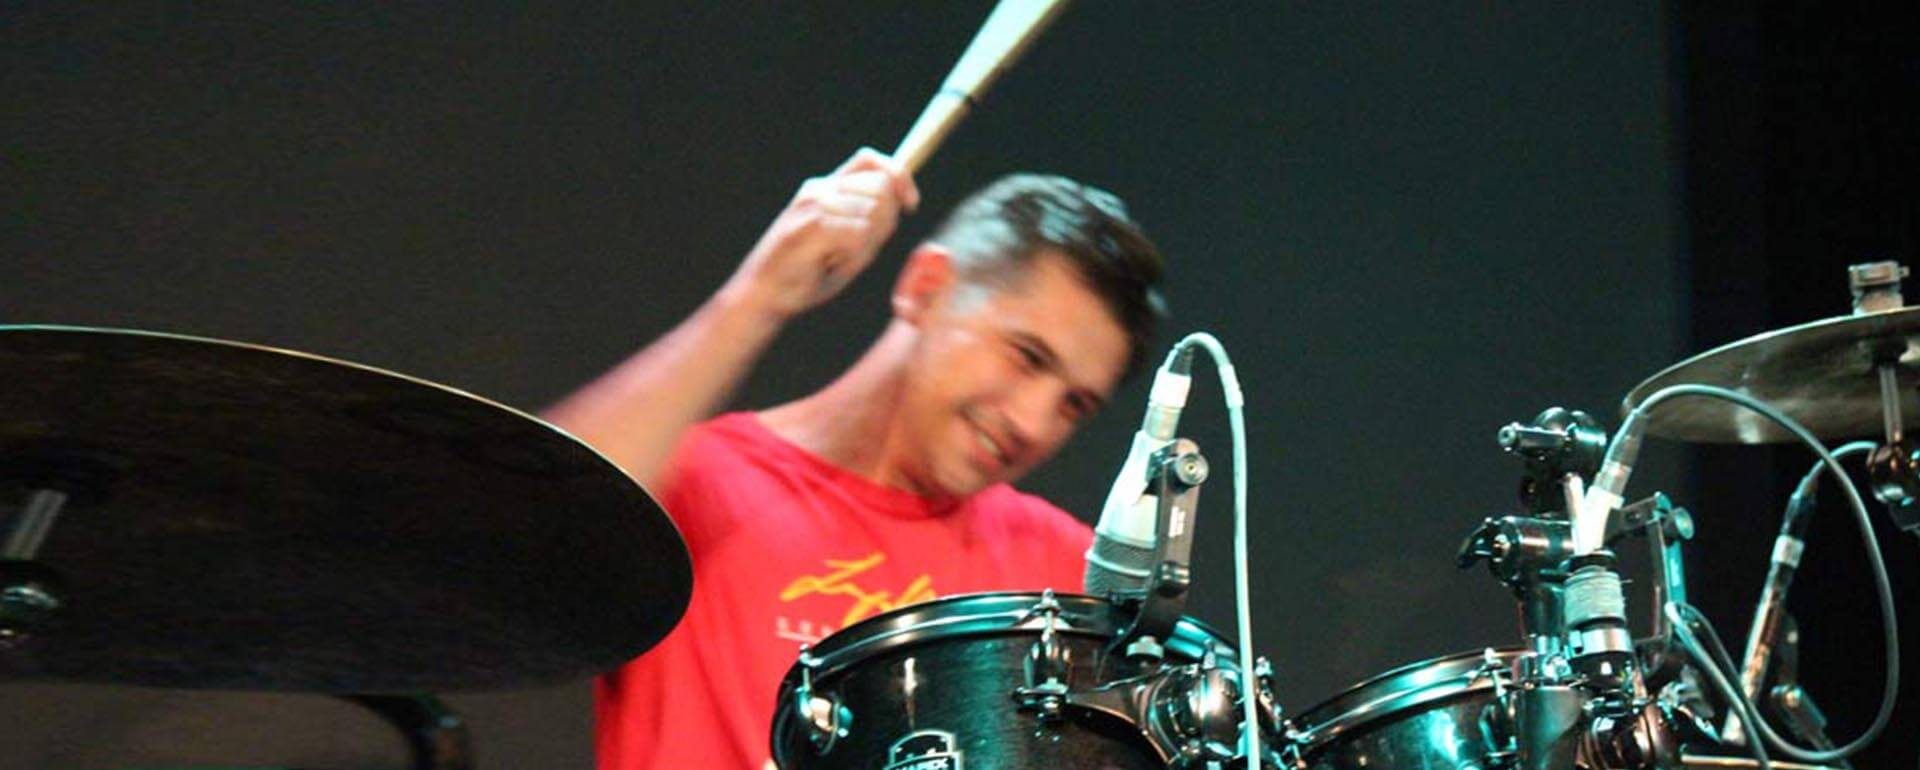 Lee Tallowin Drumming Event Photography